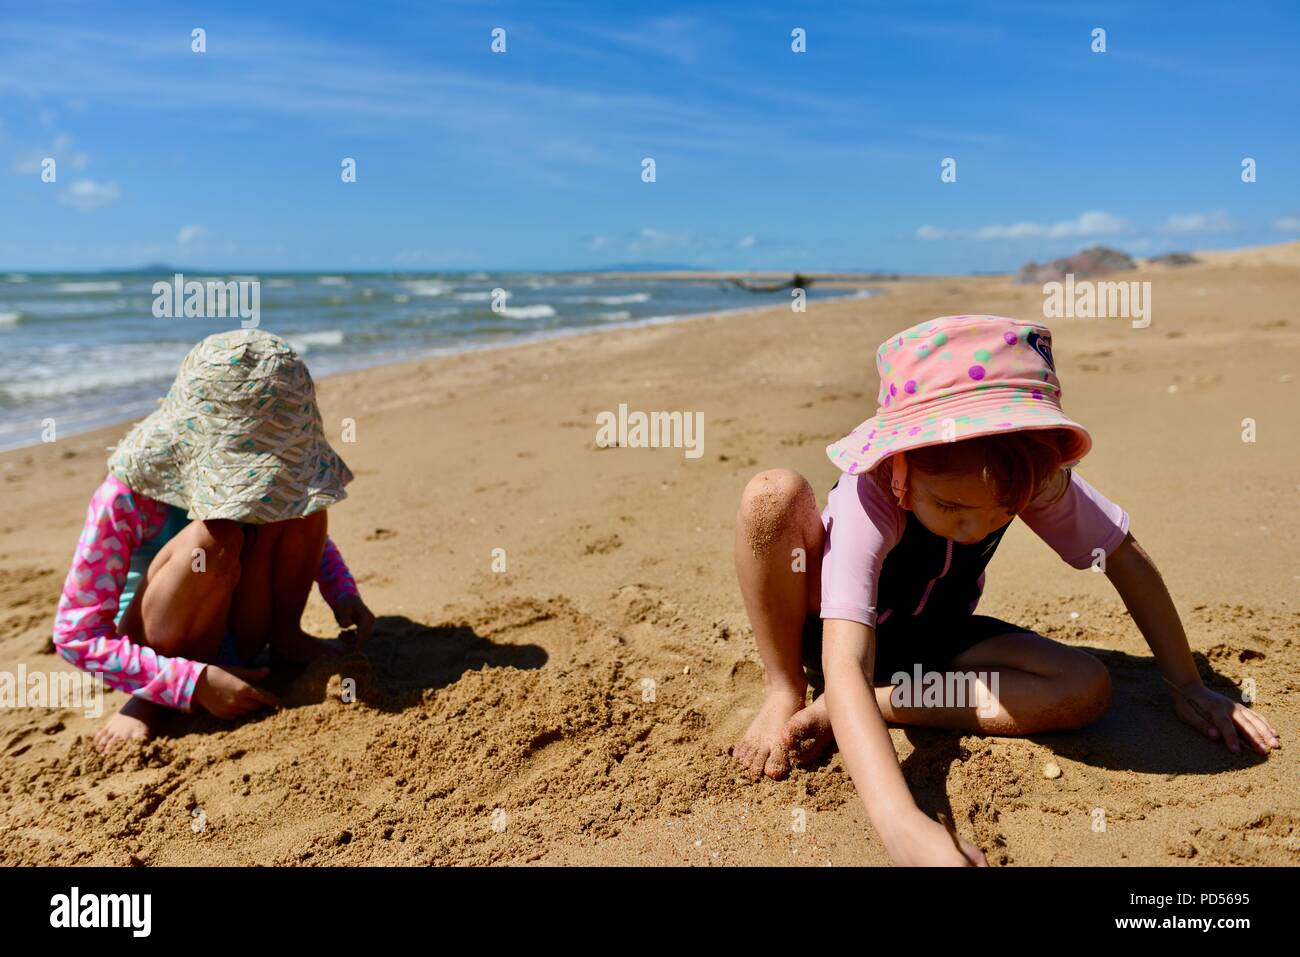 Two young girls playing in the sand on a deserted beach, Toomulla QLD, Australia - Stock Image